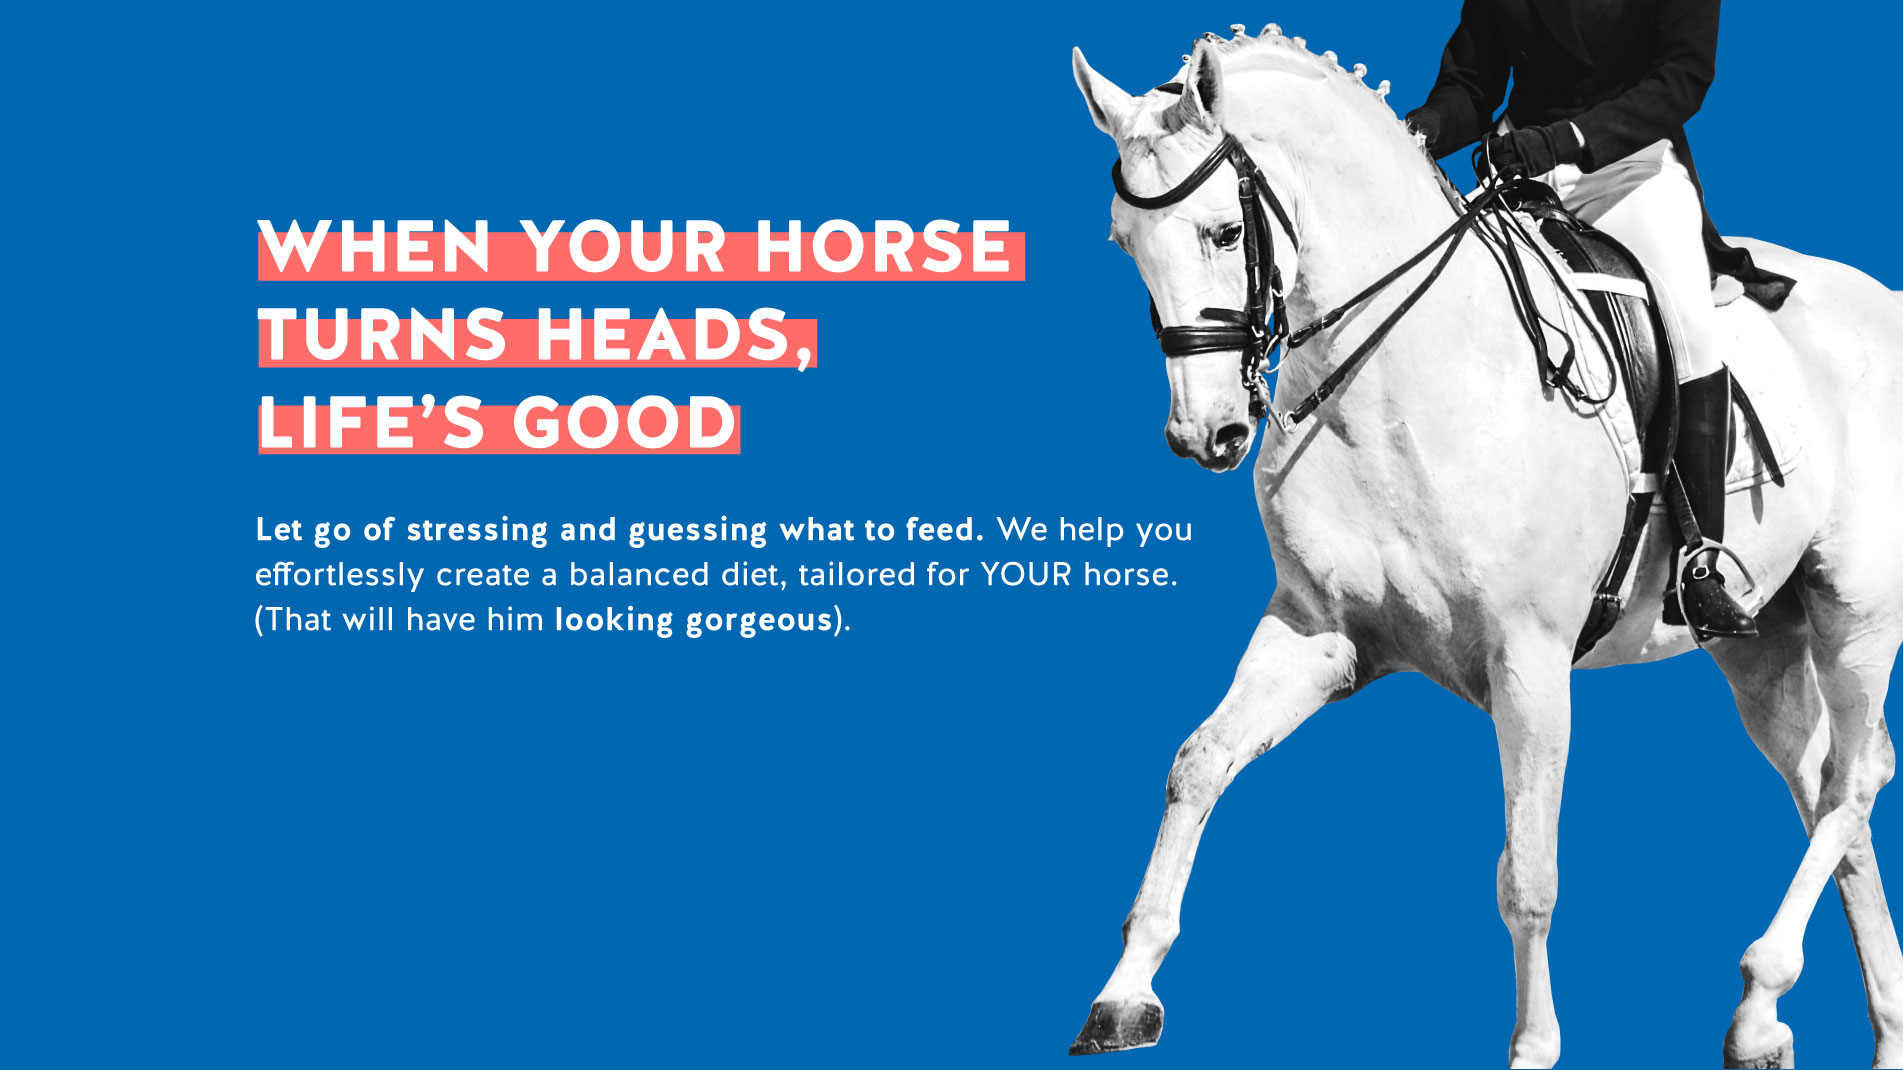 FeedXL promotion showing rider on a black horse.